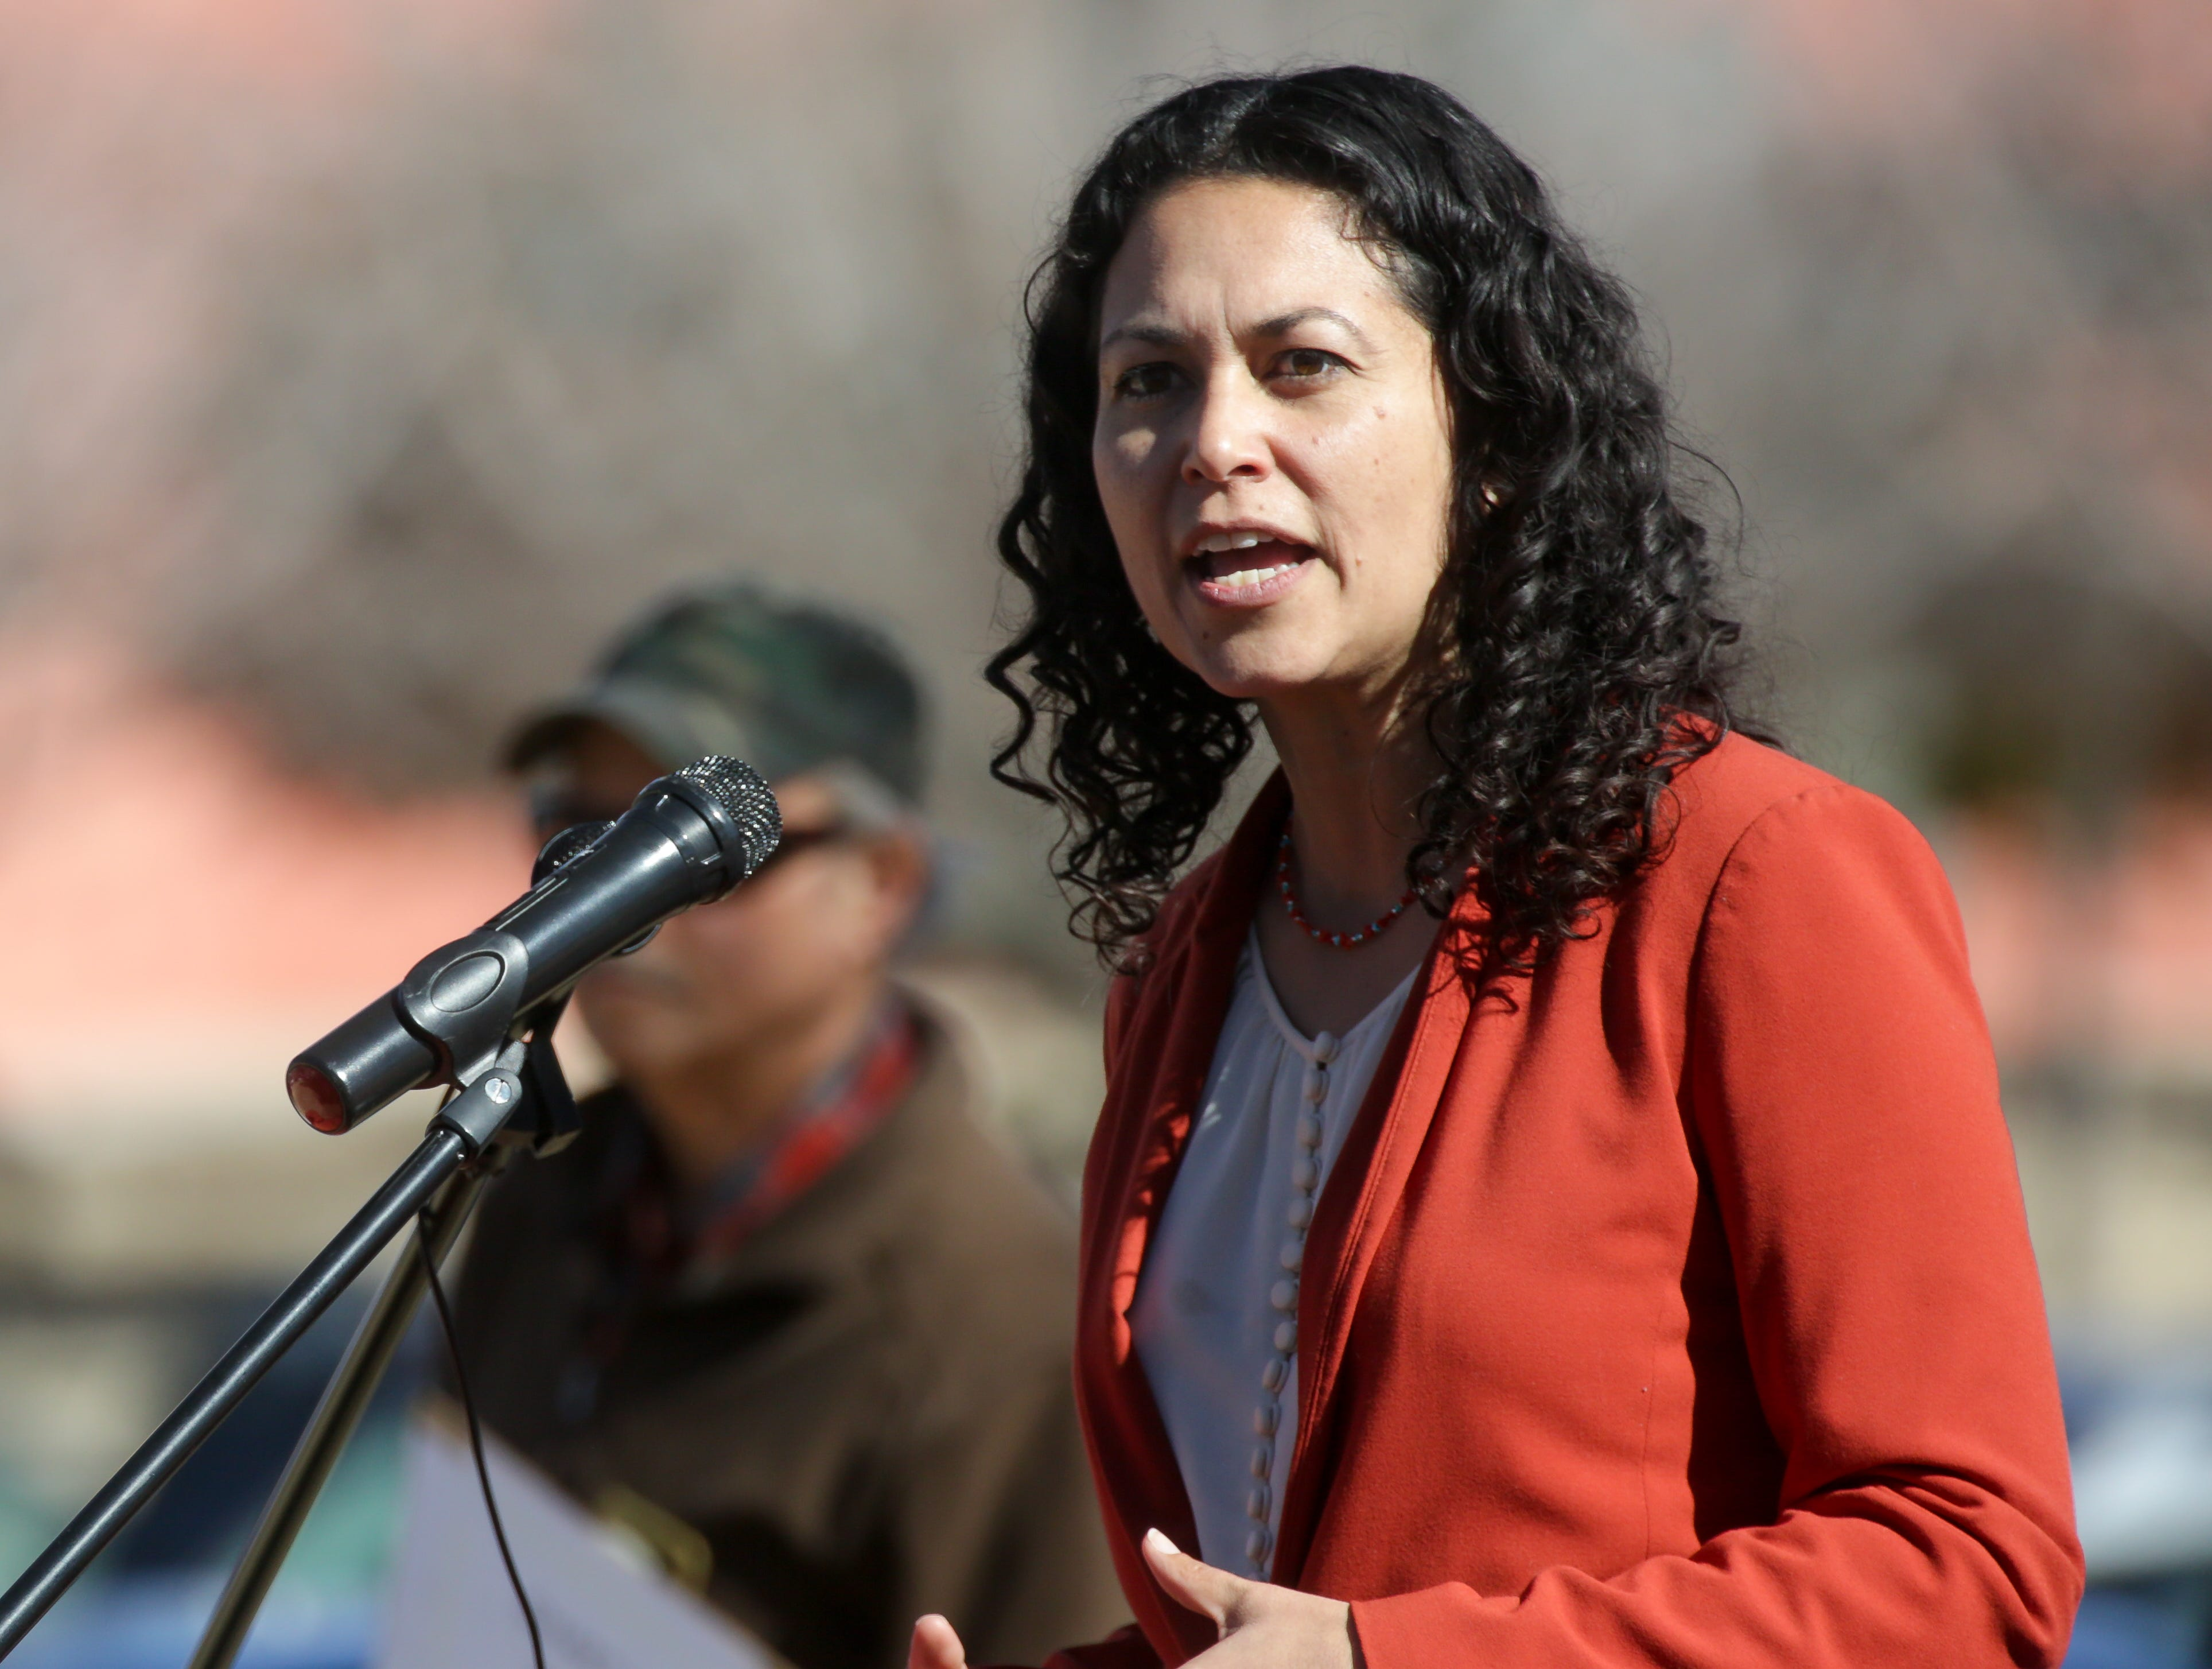 U.S. House Rep. Xochitl Torres Small speaks on Saturday, January 19, 2019 at Albert Johnson Park during the 2019 Las Cruces Woman's Rally.